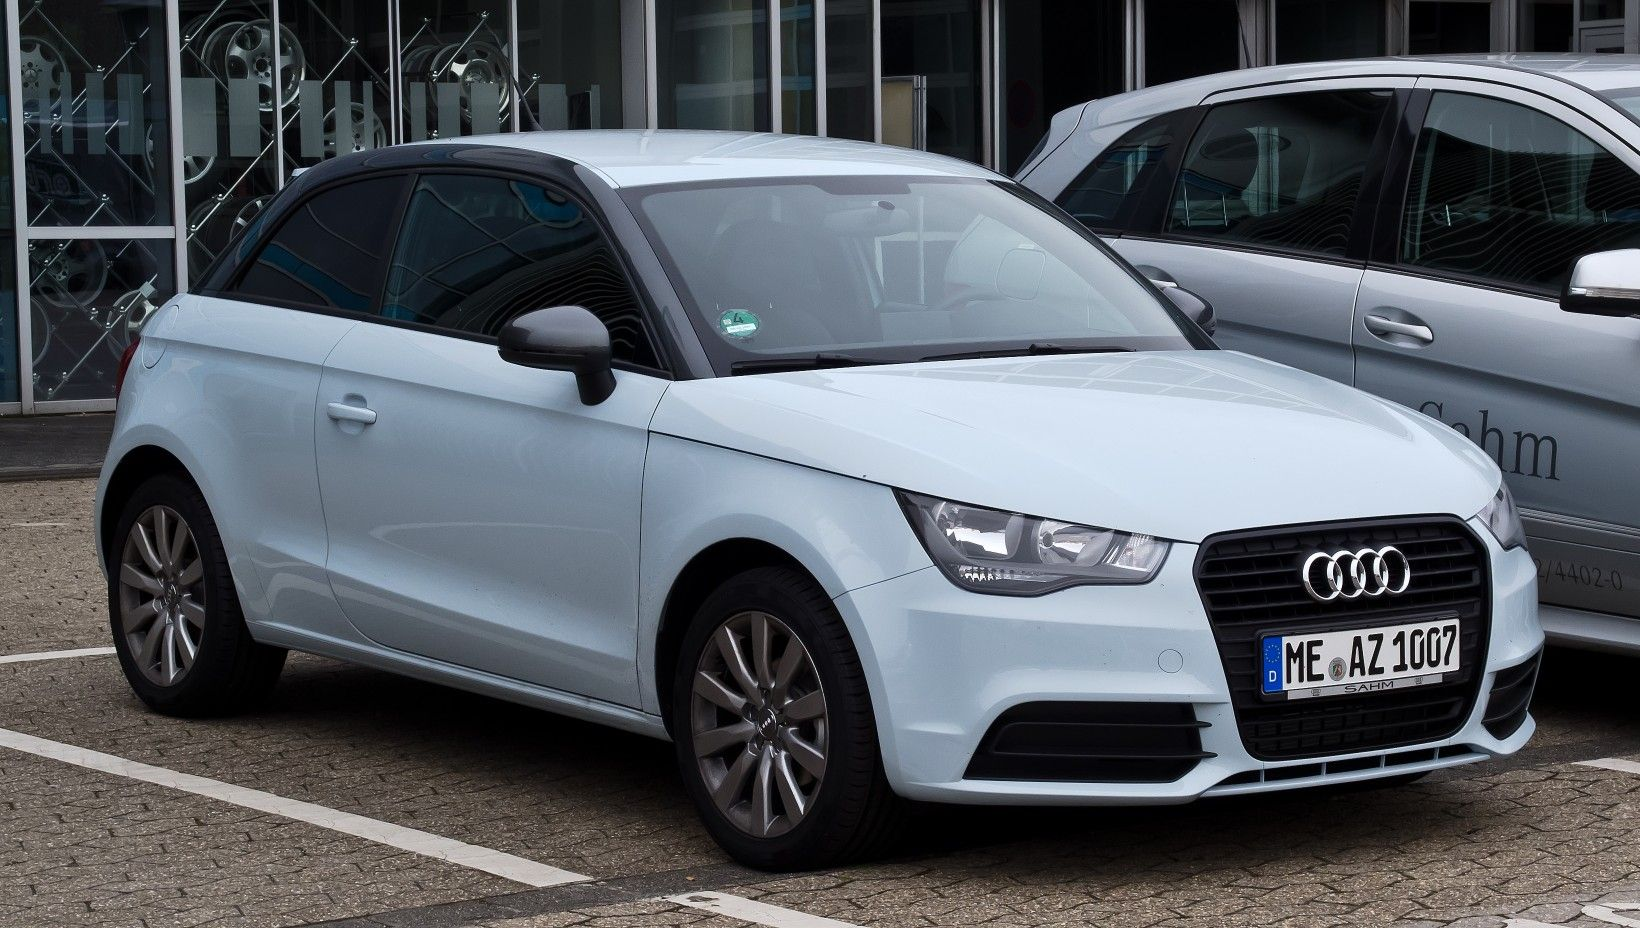 Pin By Dominika Simon On Cars In 2020 Hatchback Cars Audi A1